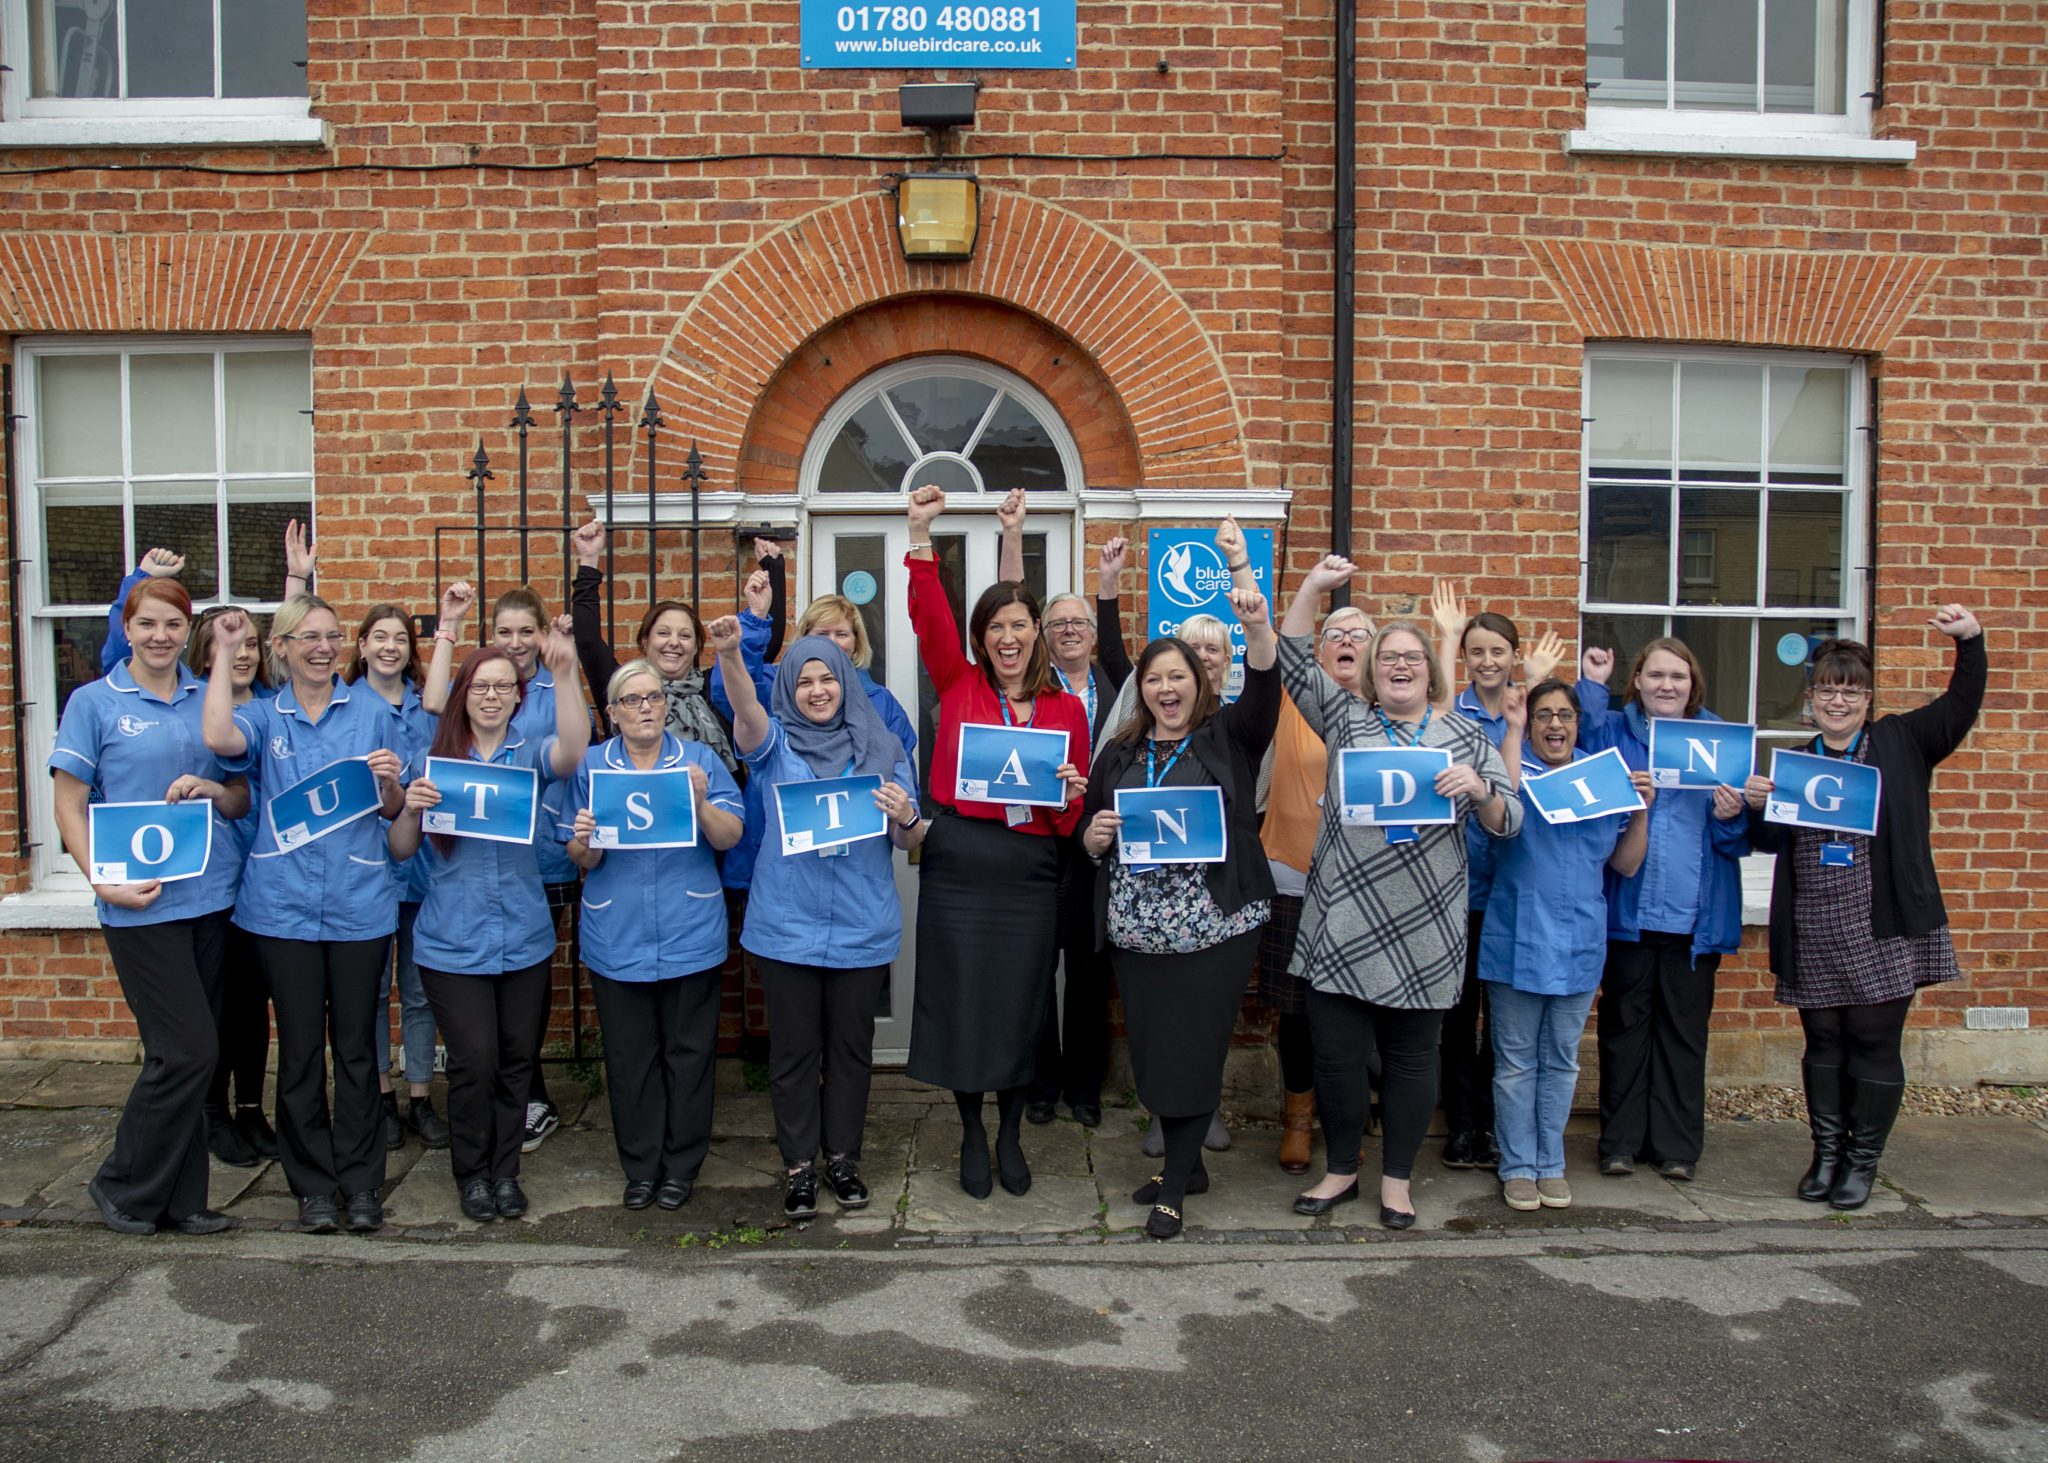 Bluebird Care Peterborough Outstanding